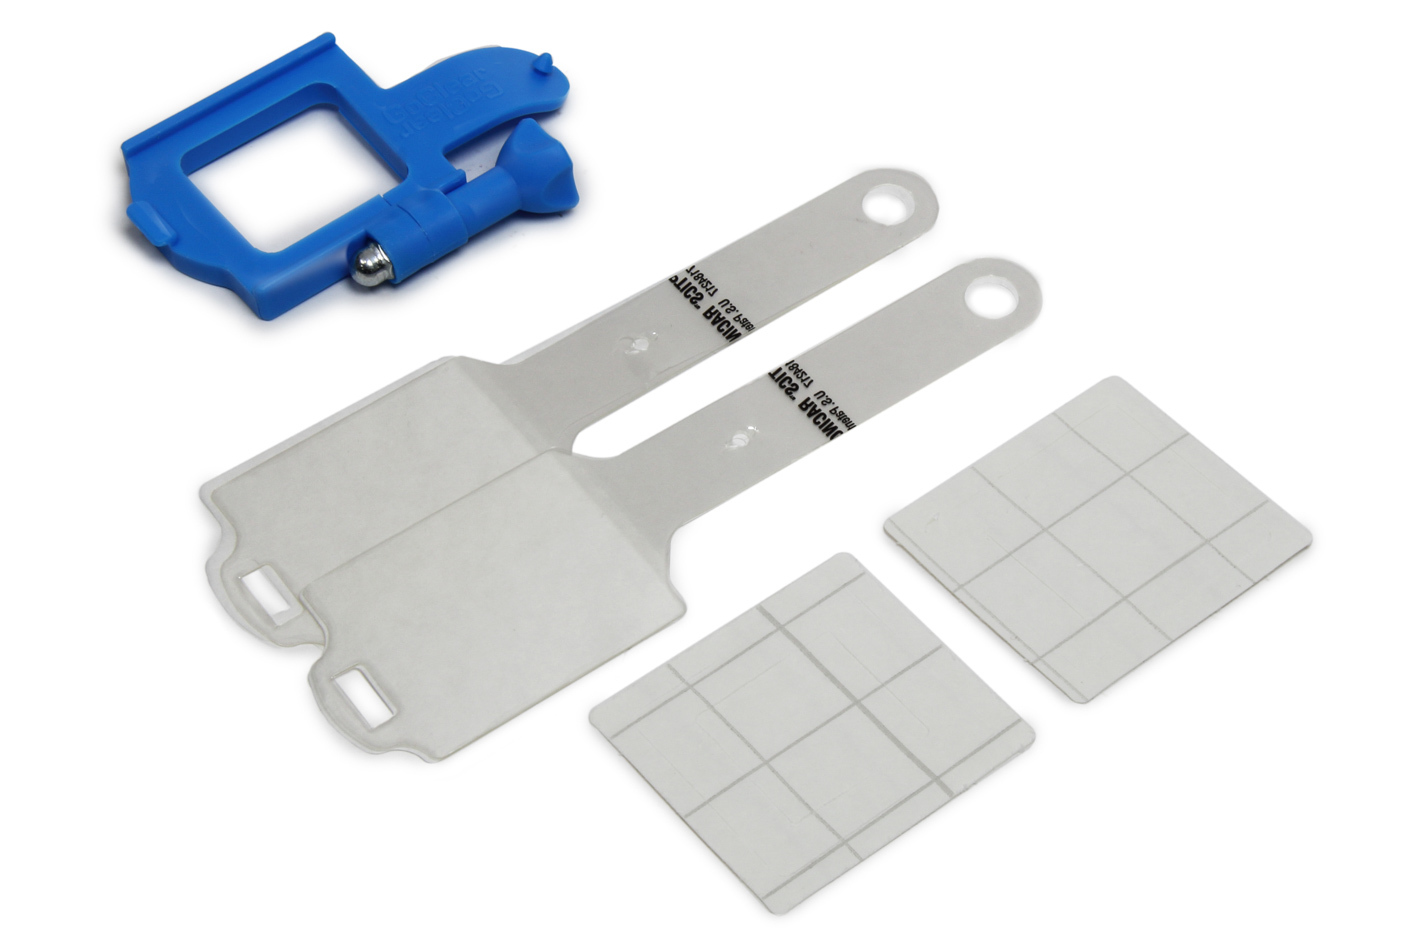 Tearoff Kit For Hero 3 GoClear